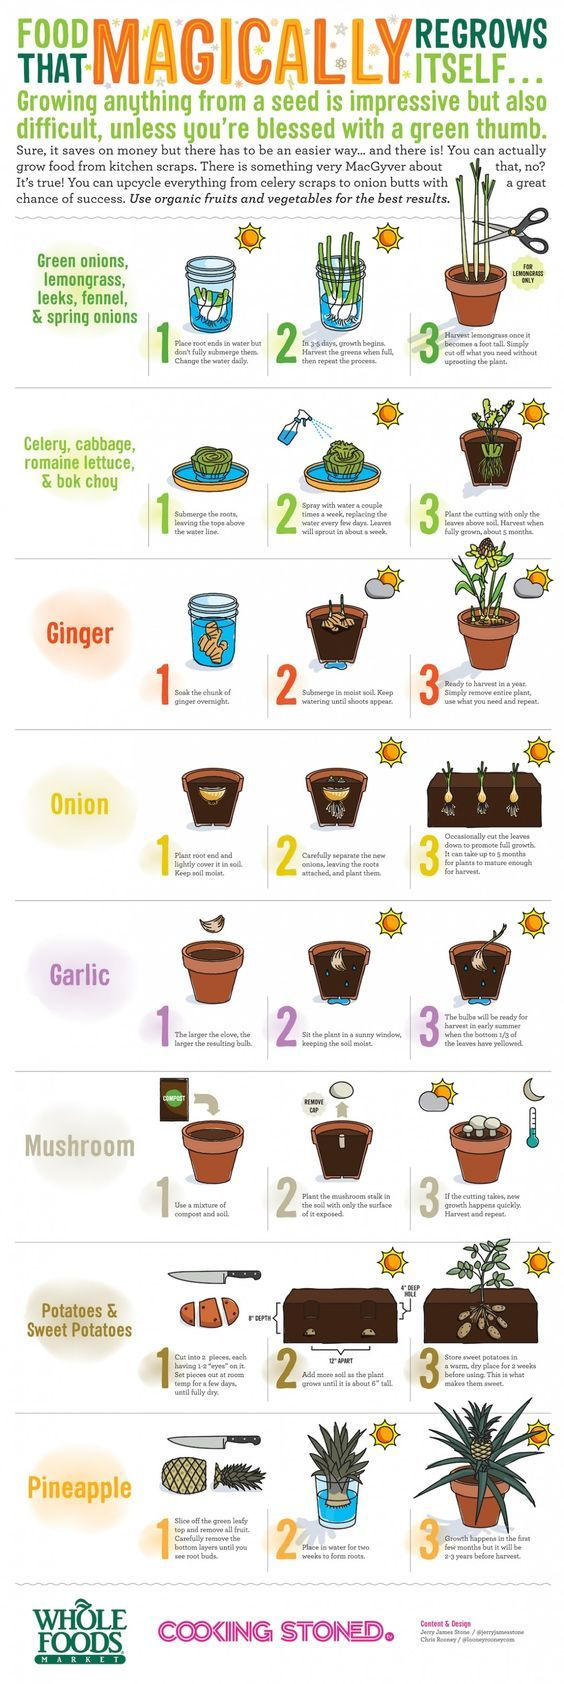 Food that regrows from smallest leftovers: